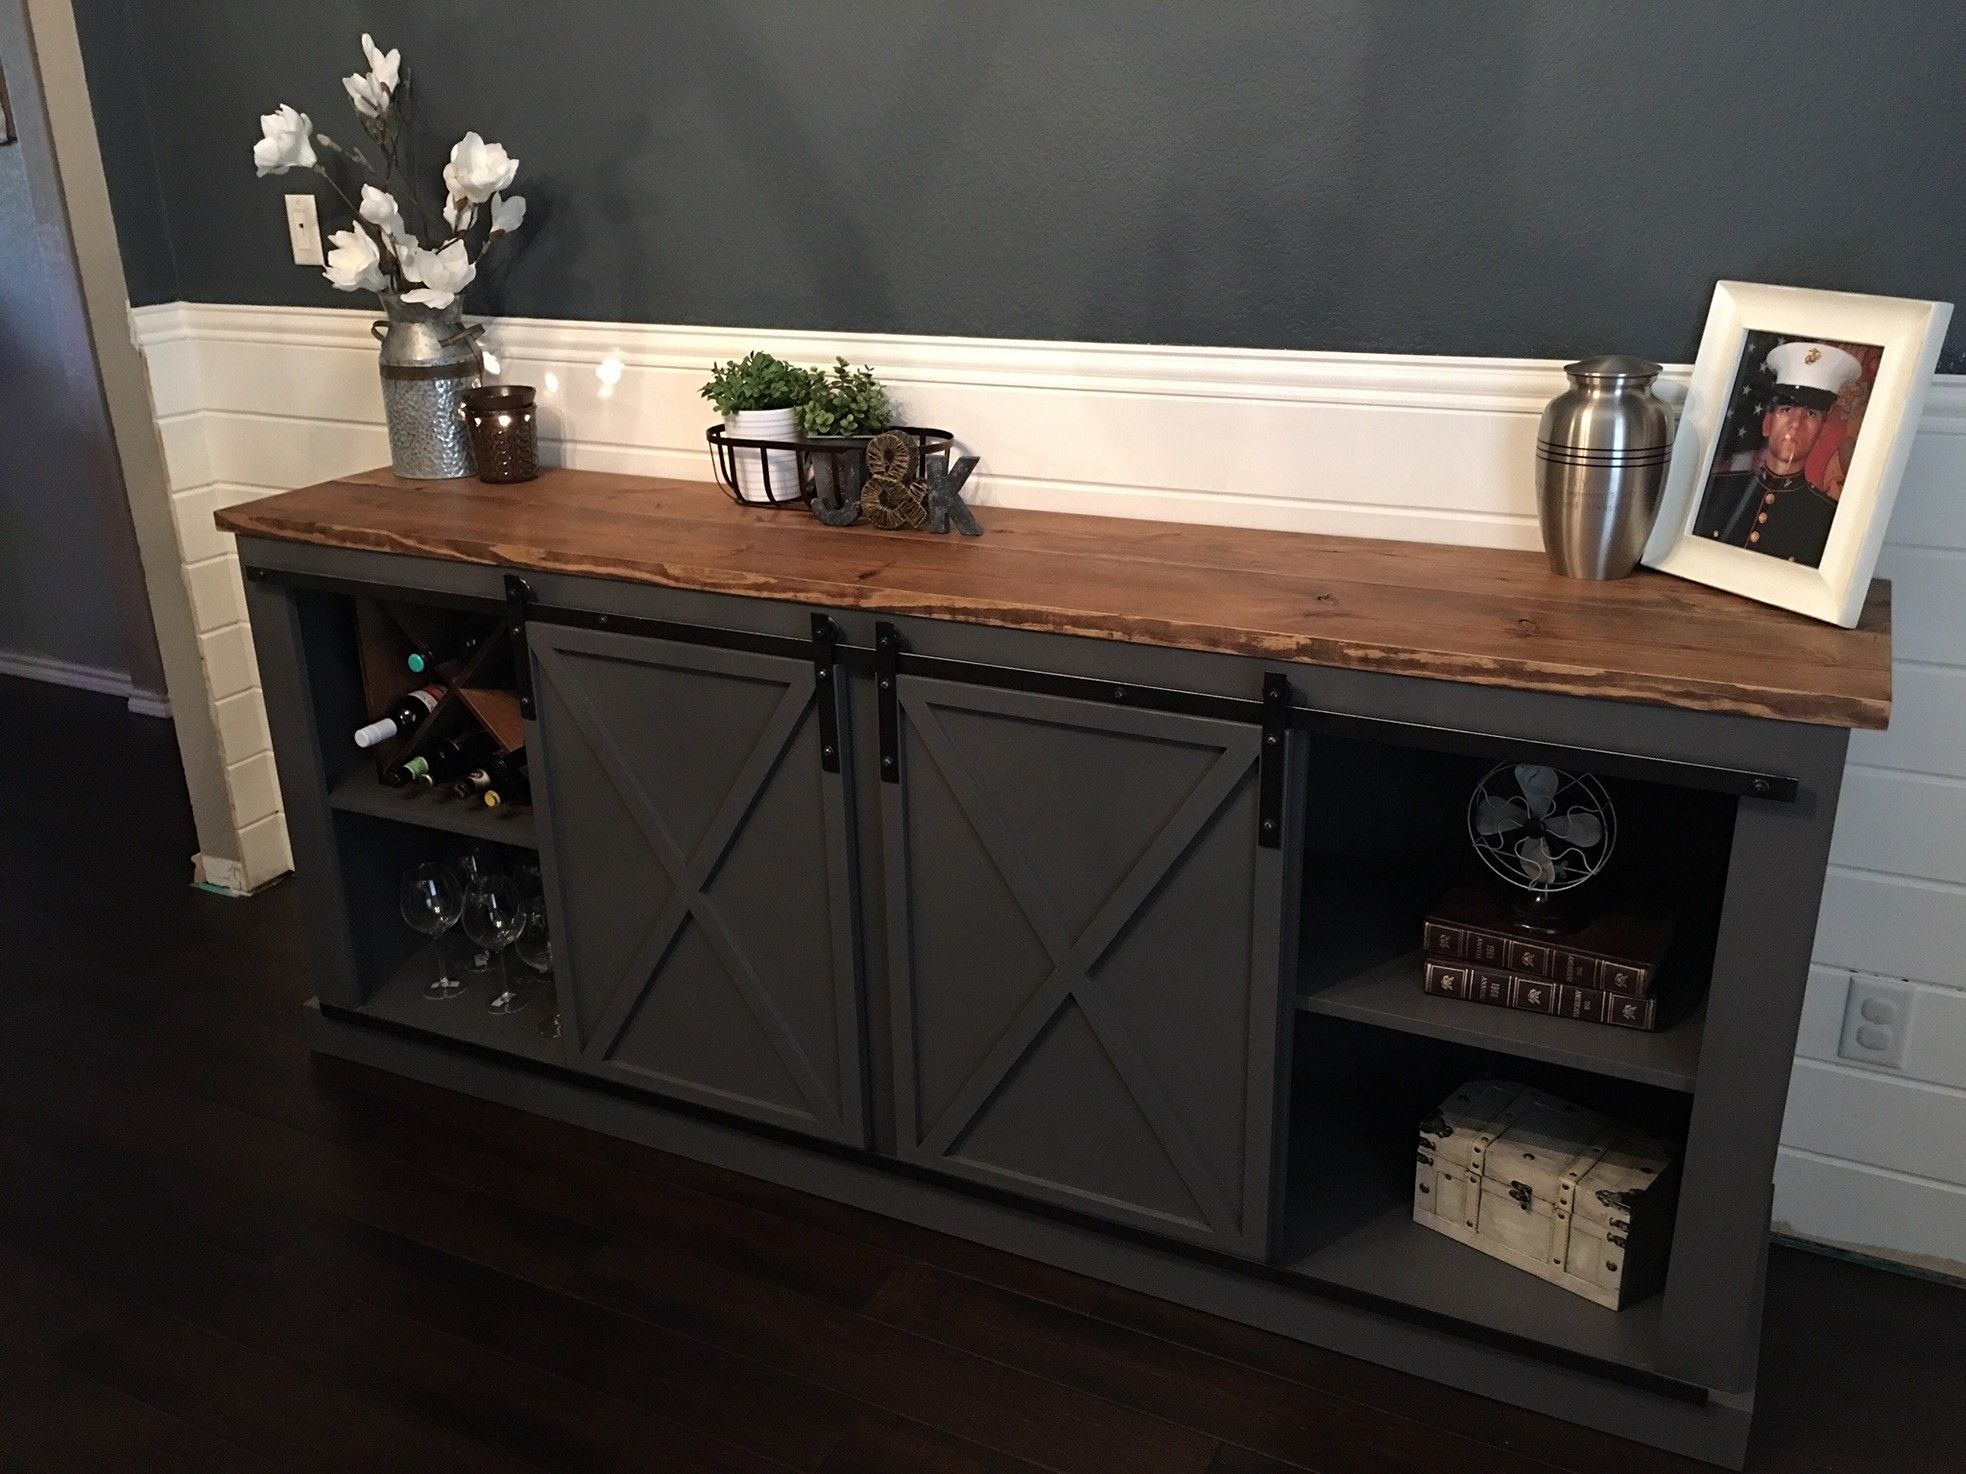 Diy Entertainment Center Ideas Plans Built In Refurbish Cheap Dresser Pallets Tv Stands Shelves Wall Cor Barn Door Console Barn Door Cabinet Diy Door